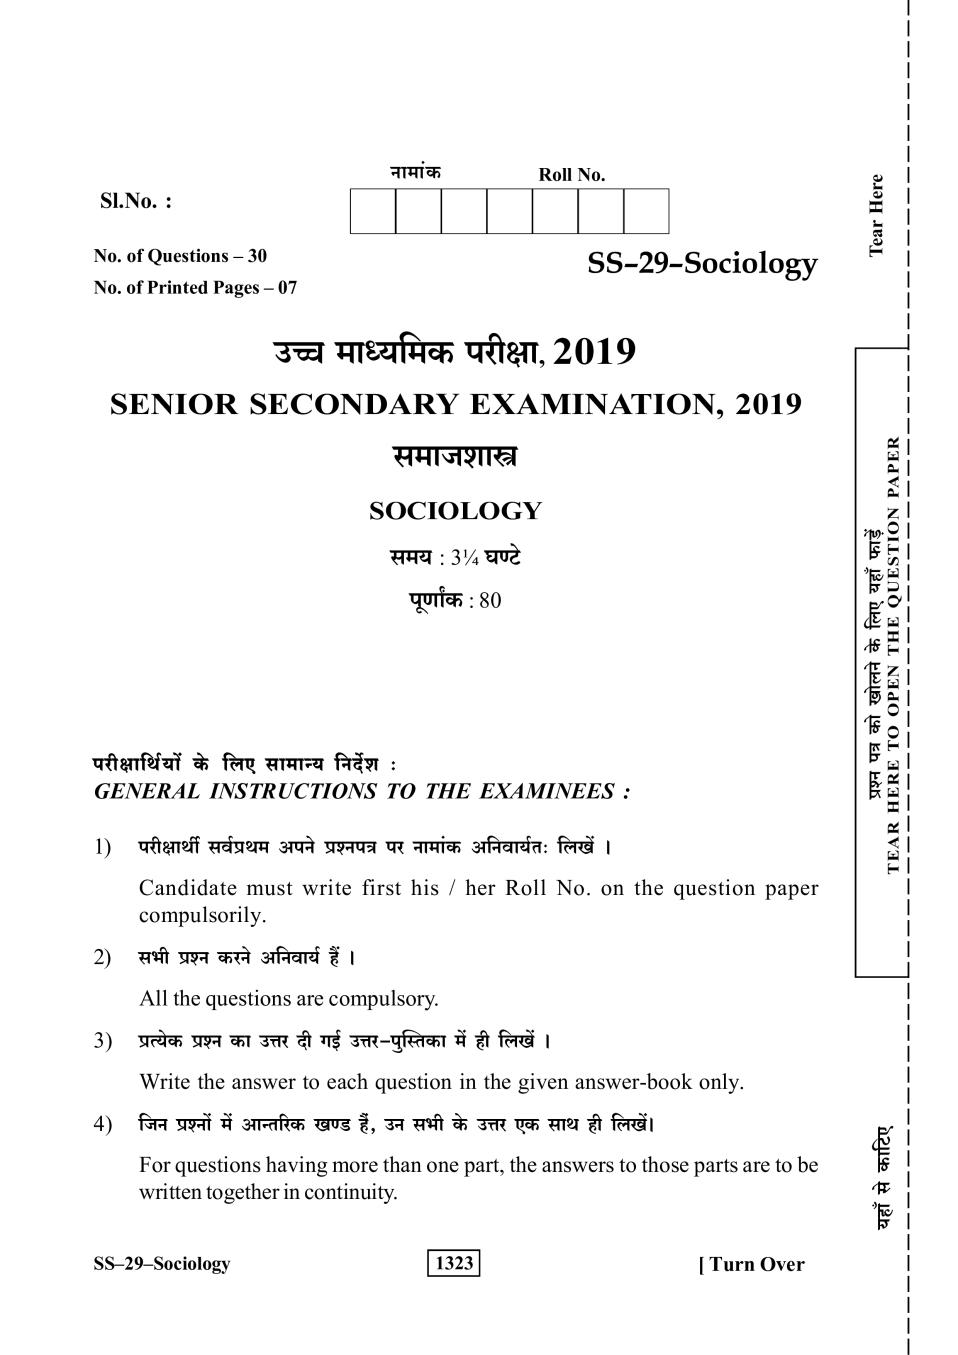 Rajasthan Board Sr. Secondary Sociology Question Paper